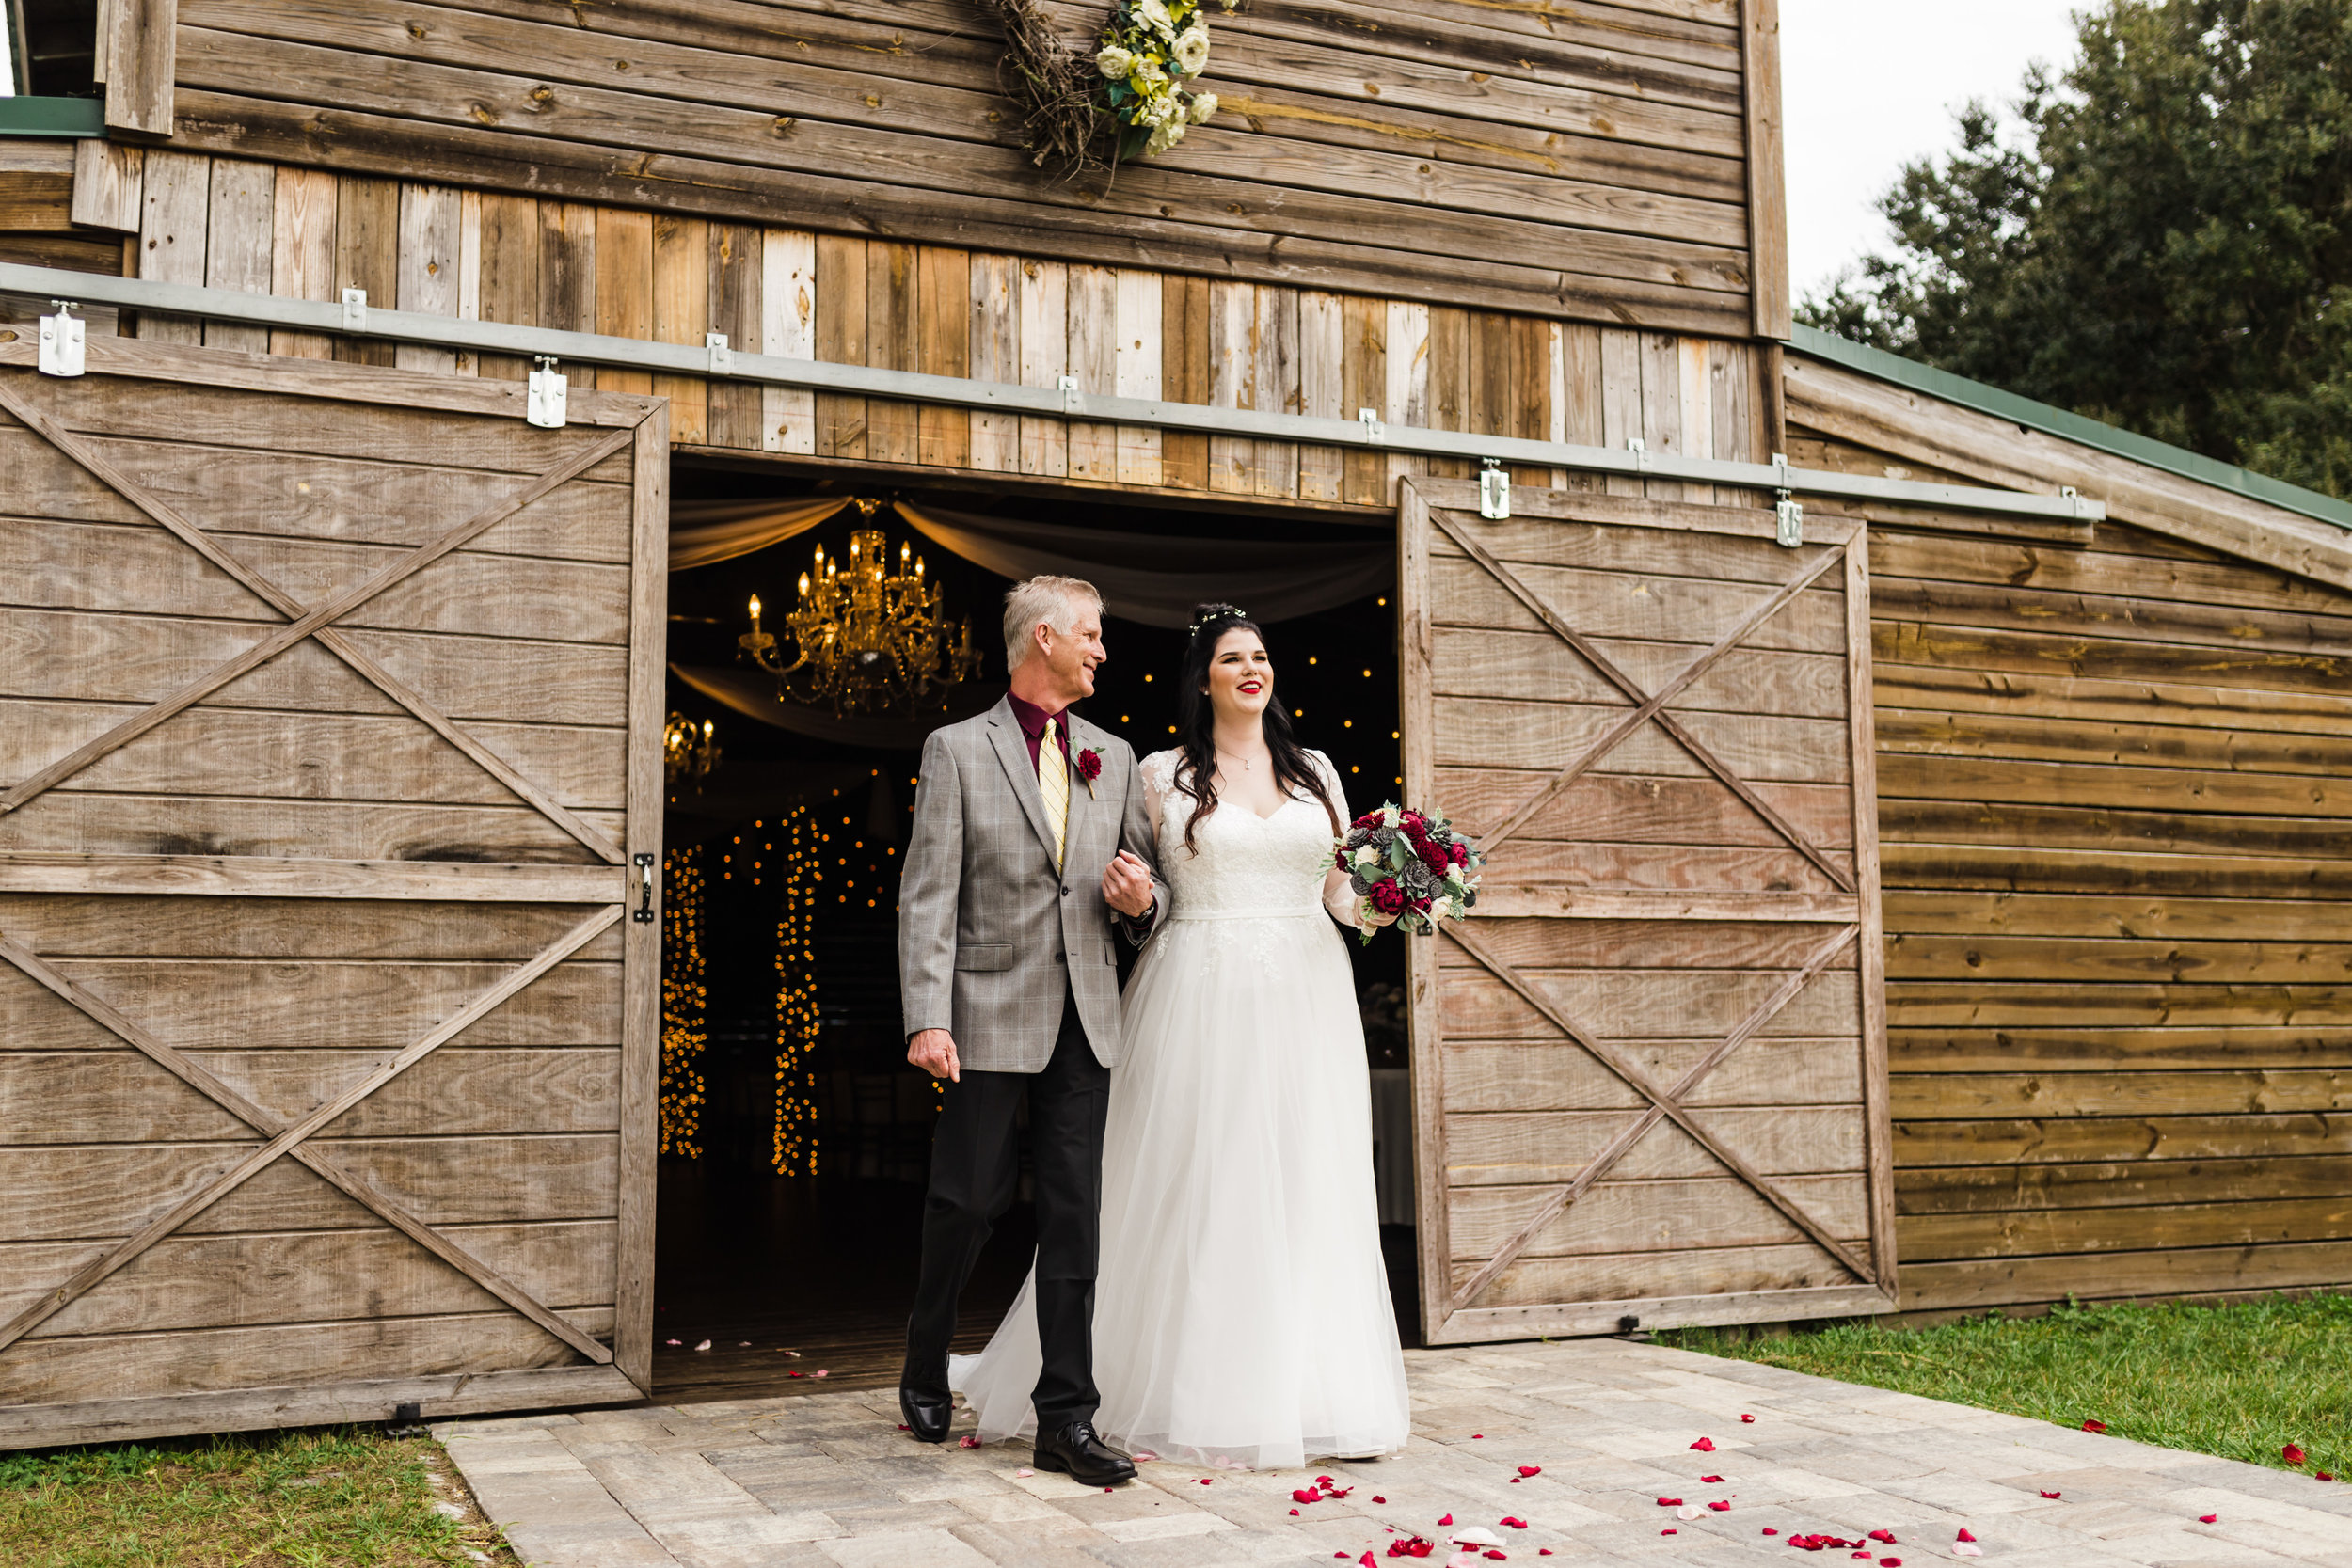 2018.11.11 Paige and TJ Enchanting Barn Wedding (186 of 841).jpg